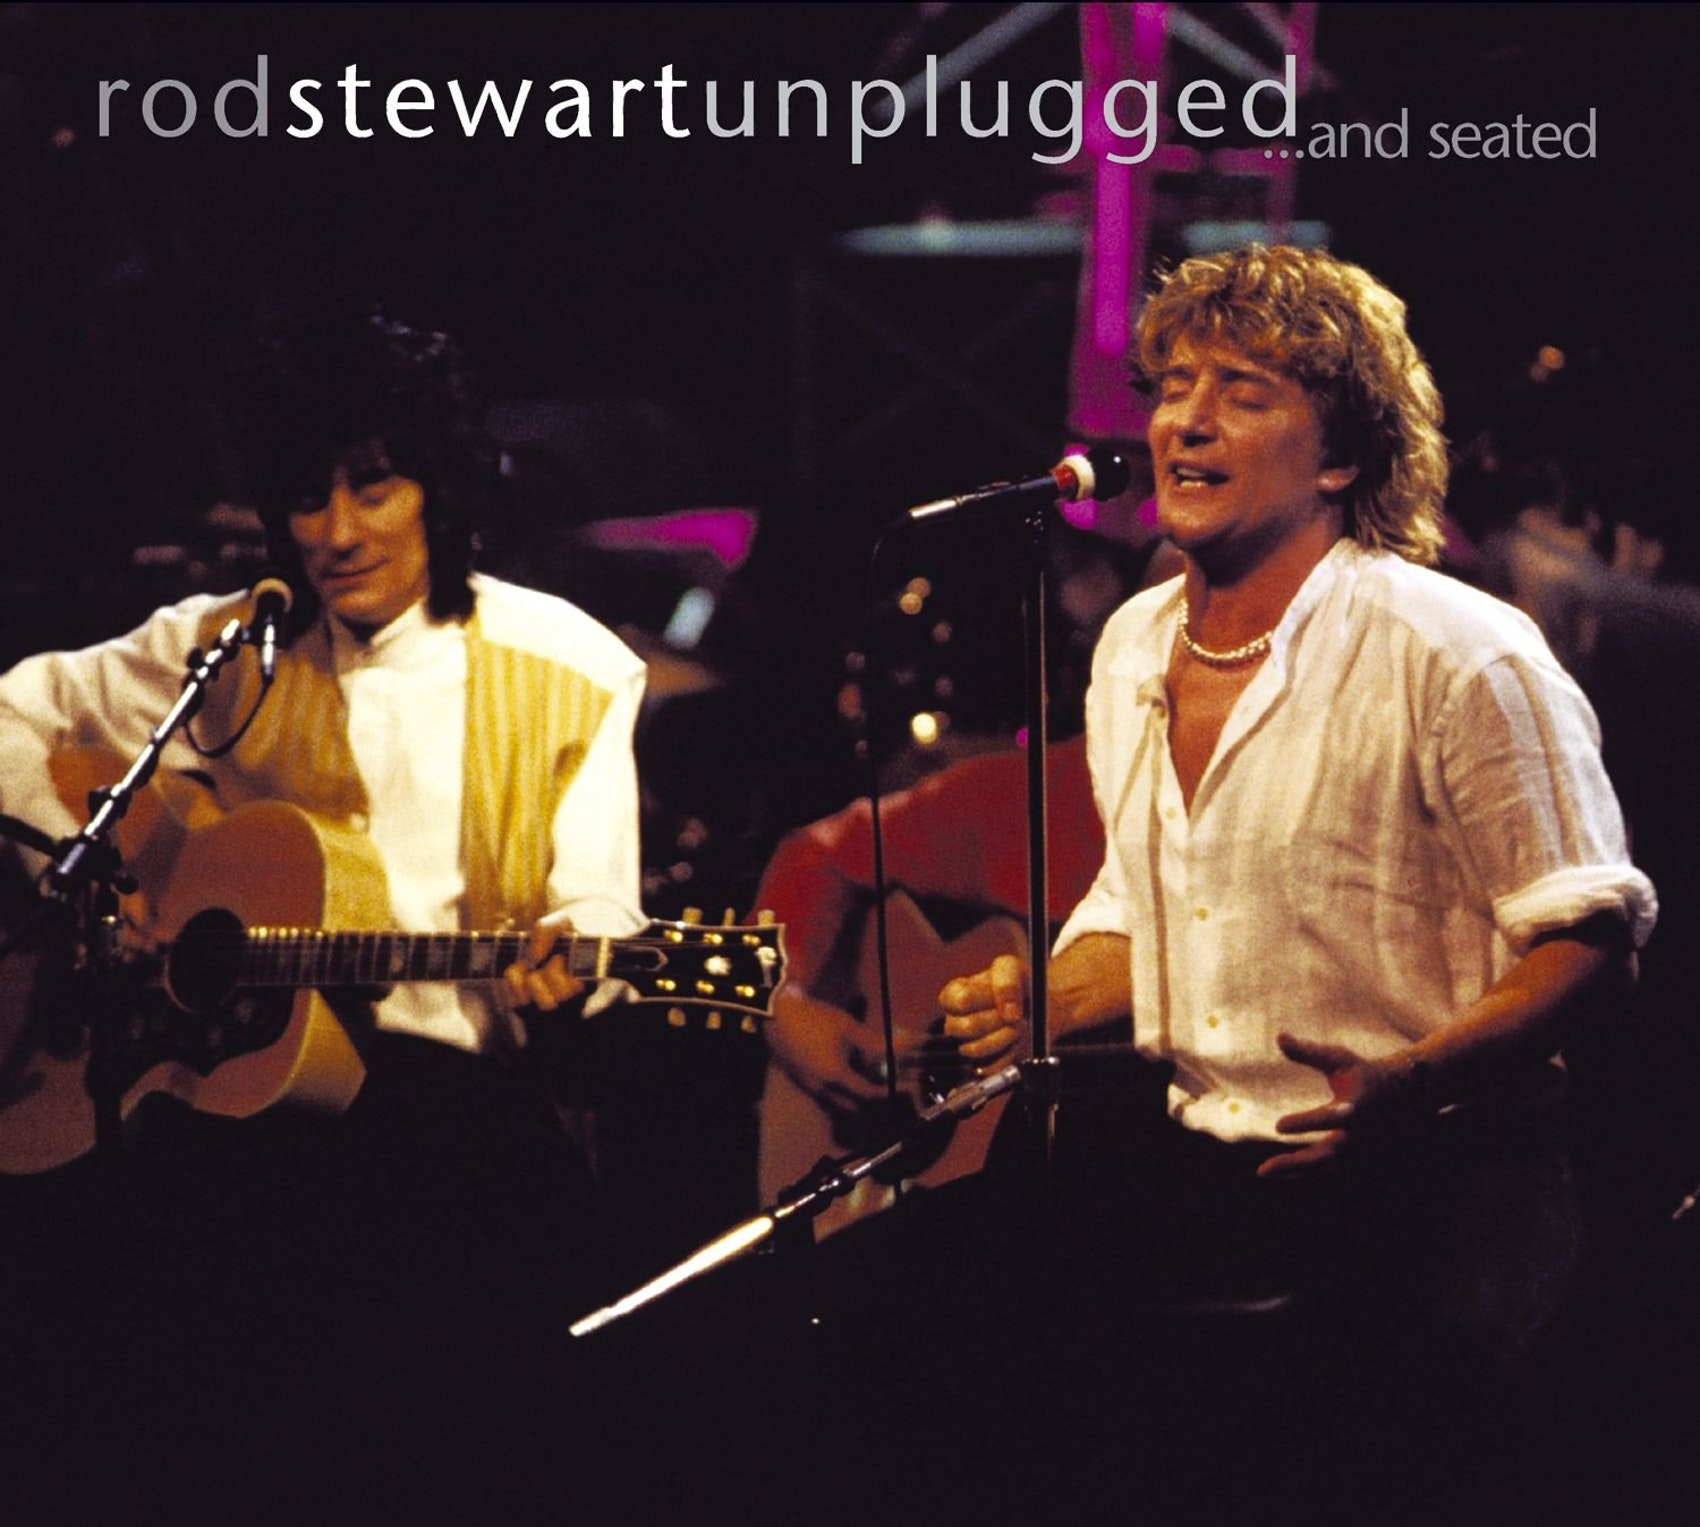 The 10 best mtv unplugged albums to own on vinylc vinyl me please rod stewart unplugged and seated malvernweather Choice Image